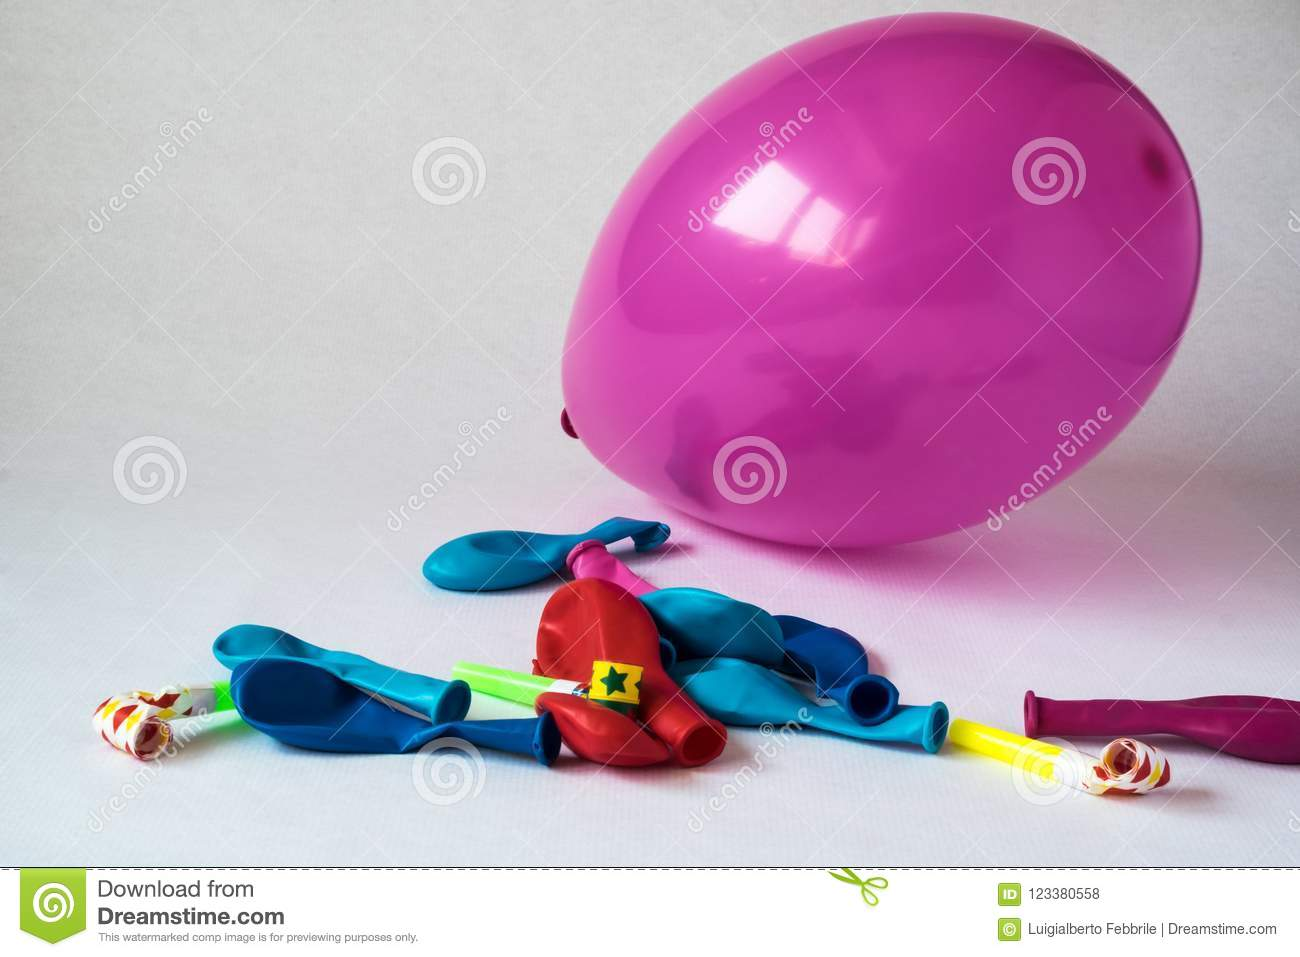 Colorful party balloons, out of the box to celebrate an event